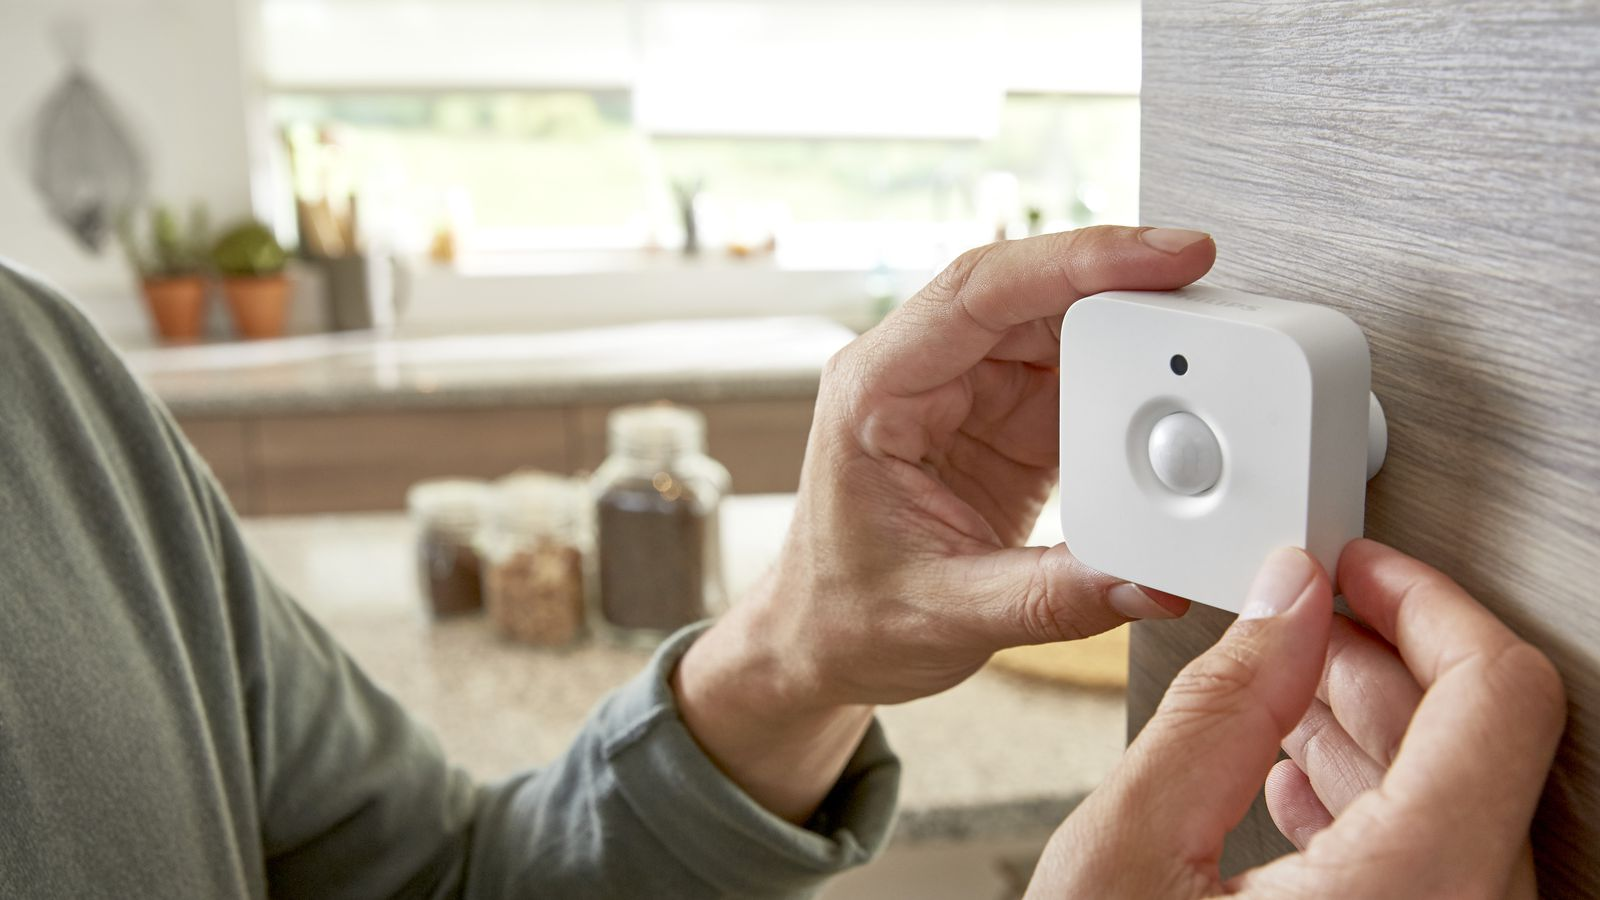 Detecteur De Mouvement Exterieur Di O Philips Hue Now Has A Motion Sensor That Can Turn On